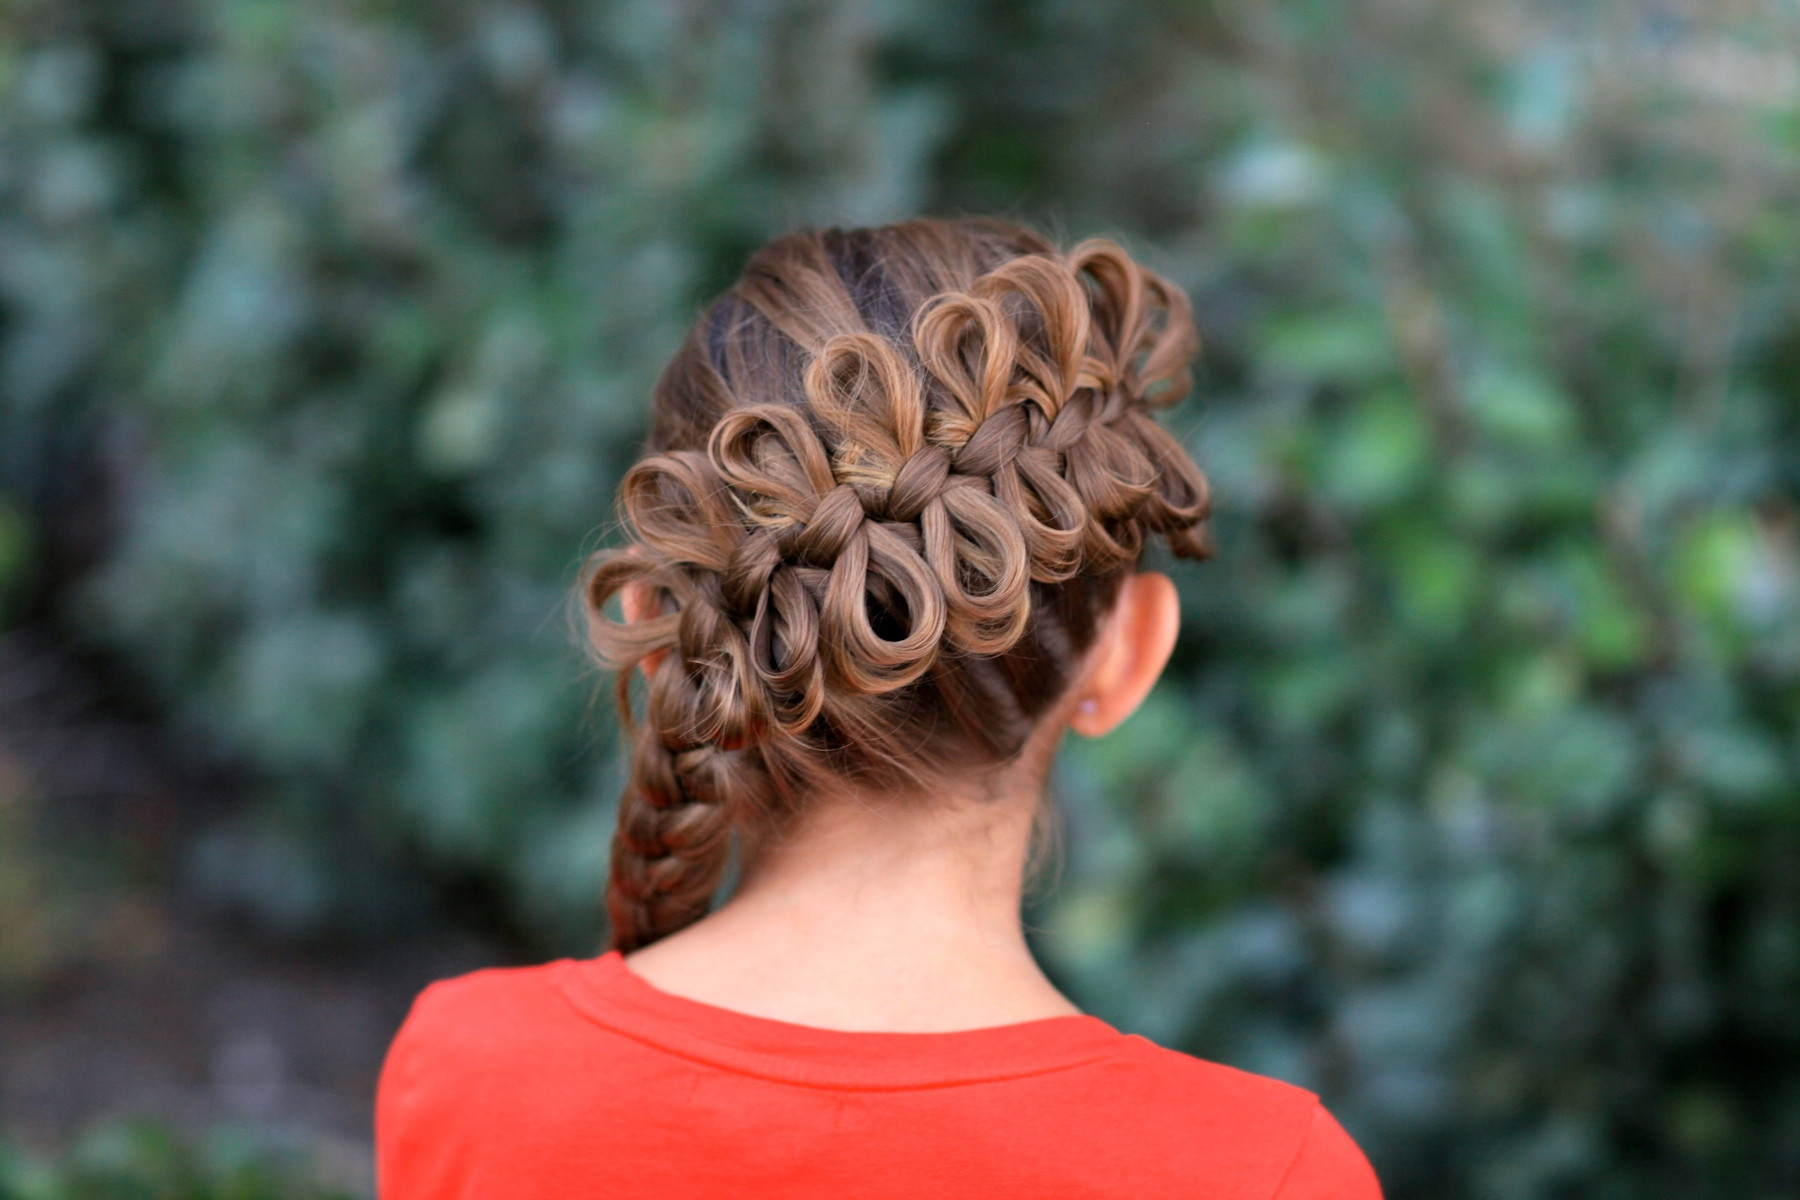 Best ideas about Cute White Girl Hairstyles . Save or Pin Diagonal Bow Braid Popular Hairstyles Now.